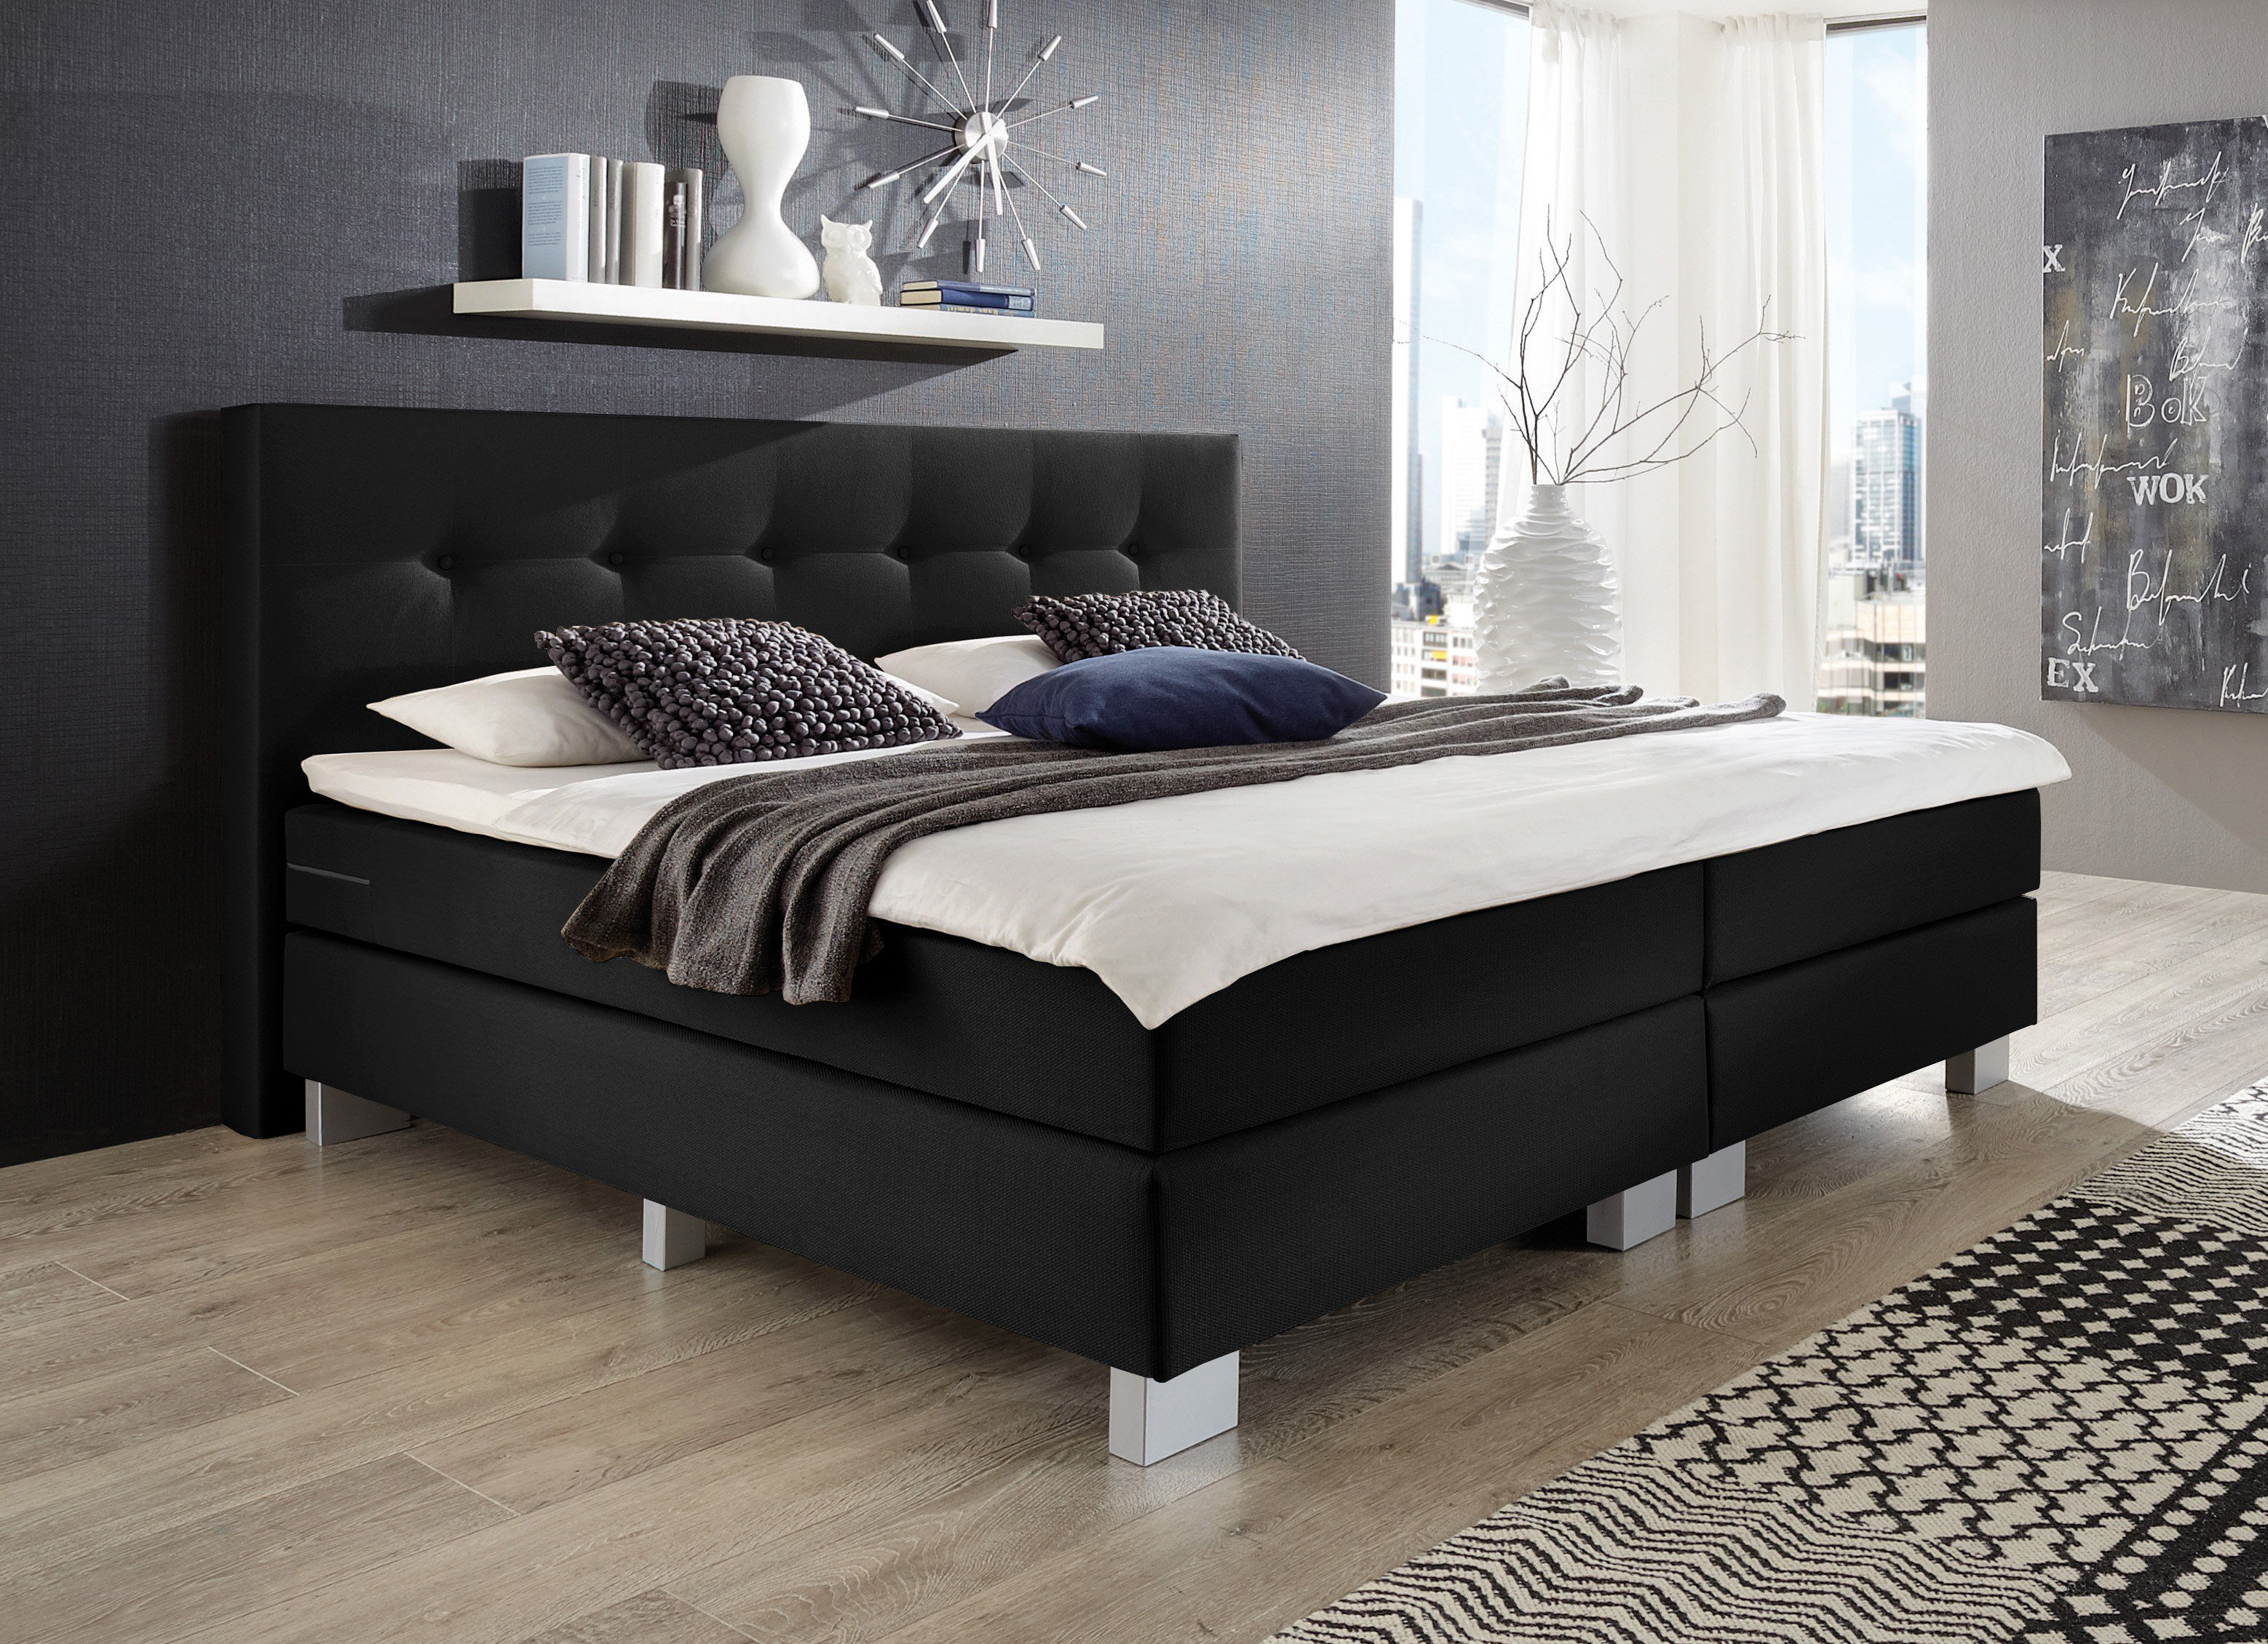 napco boxspringbett schwarz modell allround m bel letz ihr online shop. Black Bedroom Furniture Sets. Home Design Ideas